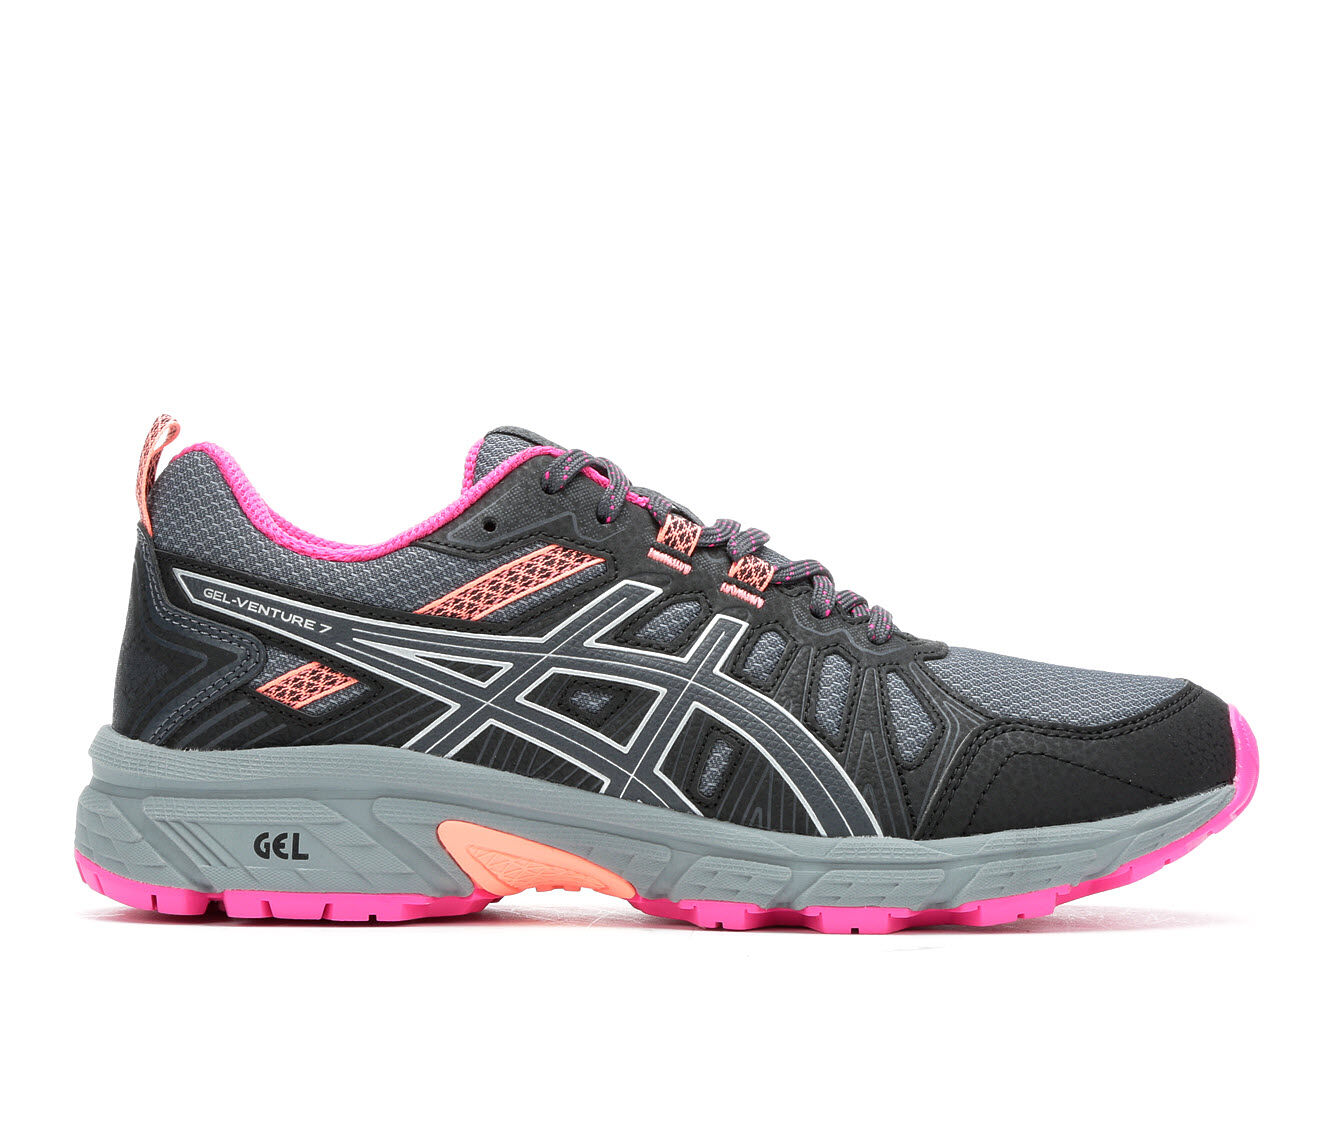 Women's ASICS Gel Venture 7 Trail Running Shoes Grey/Silv/Pink